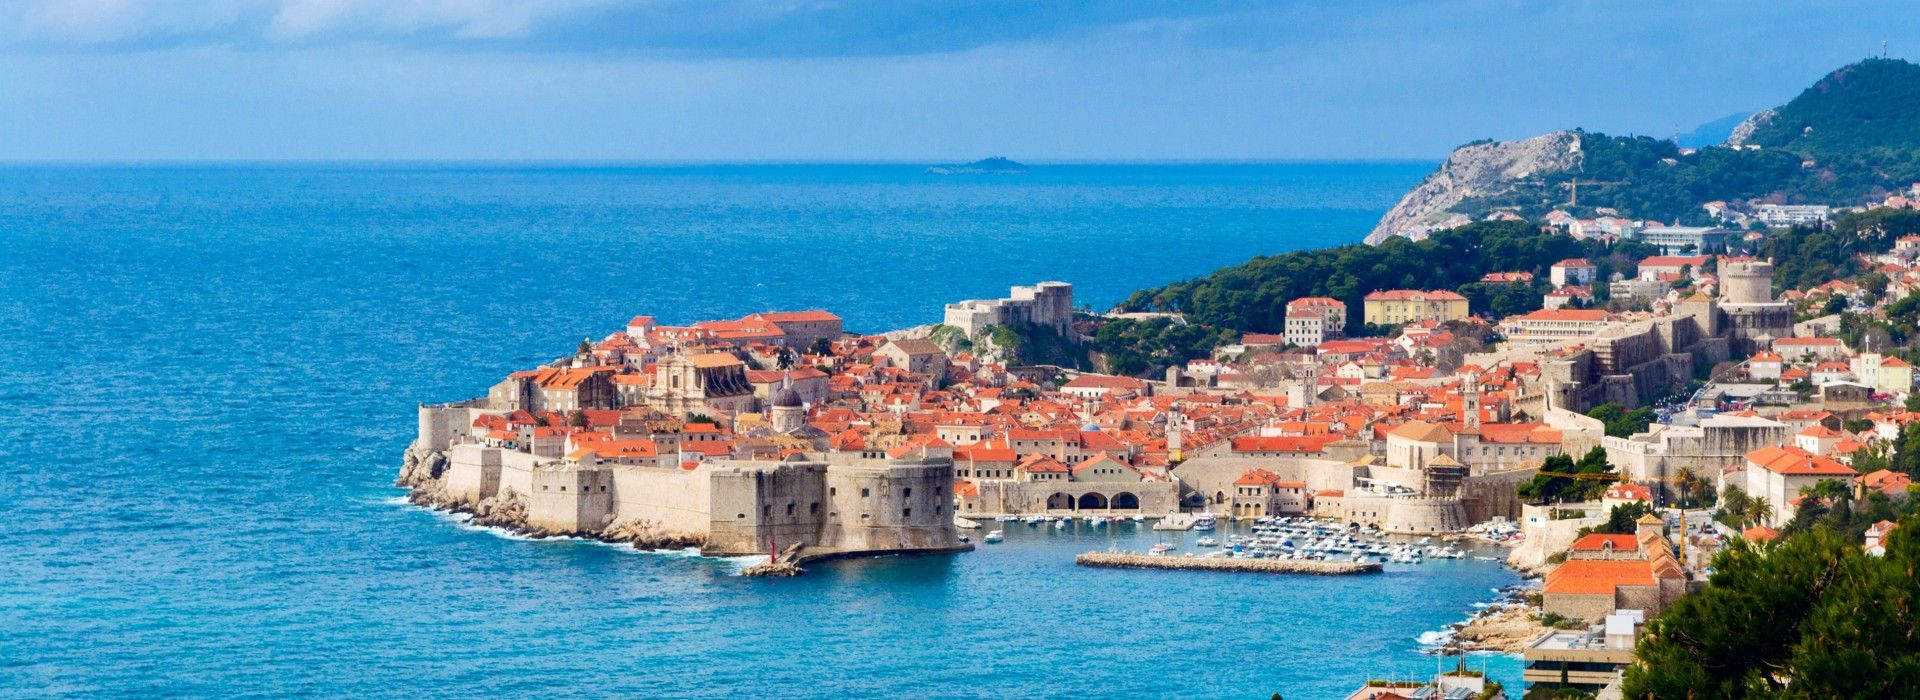 Air tours, road trips and transfers in Croatia